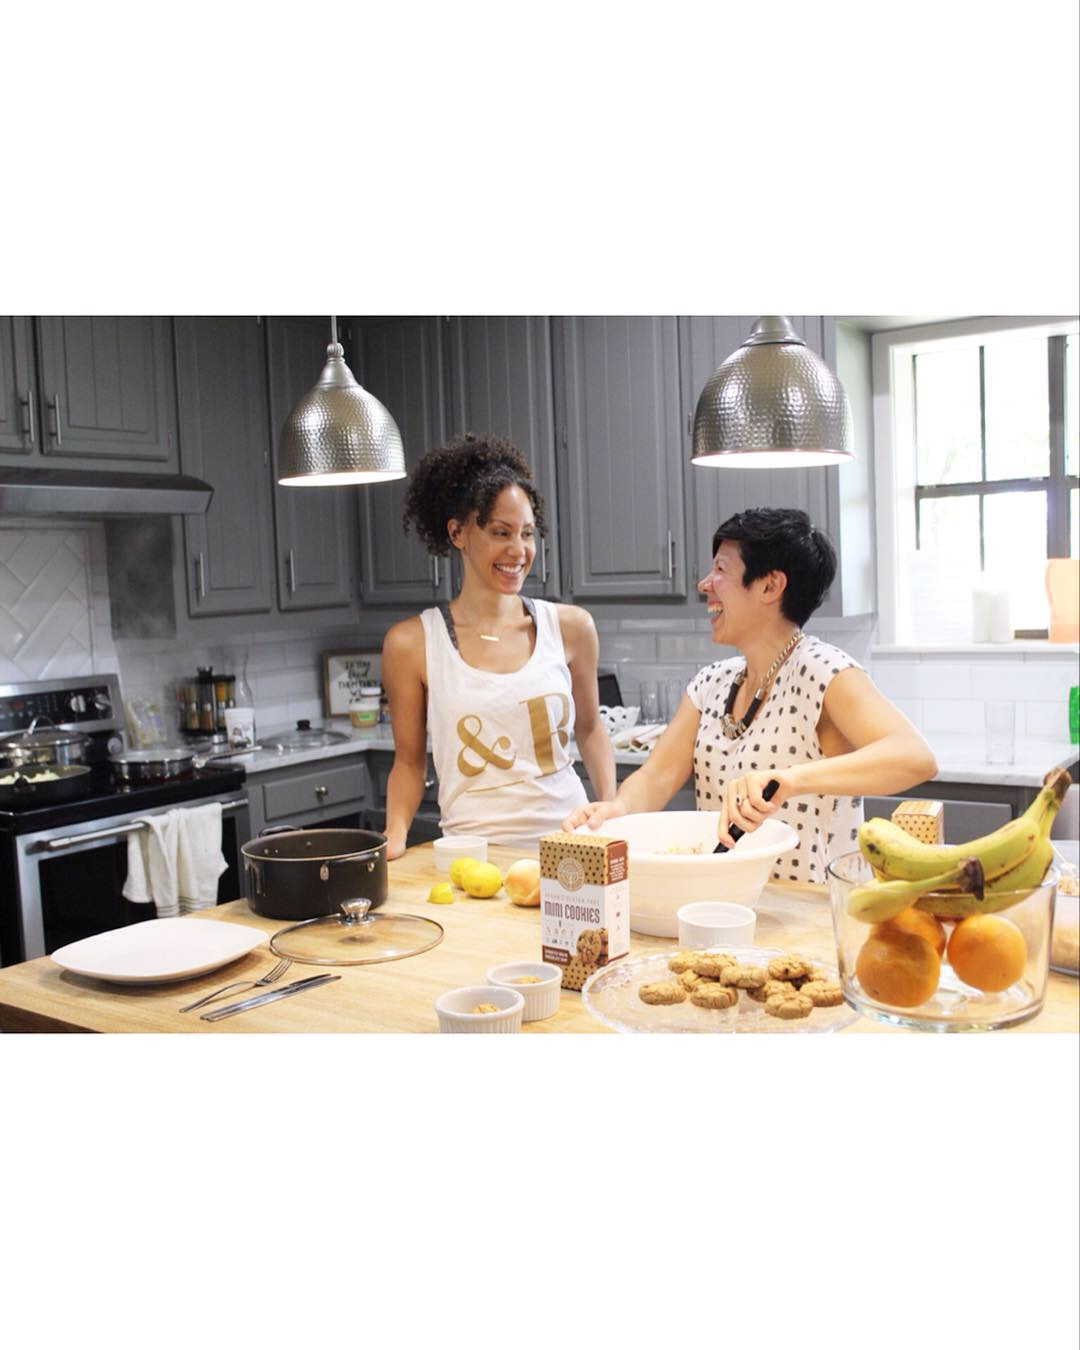 two darkahired women cooking in a kitchen with grey cabinets